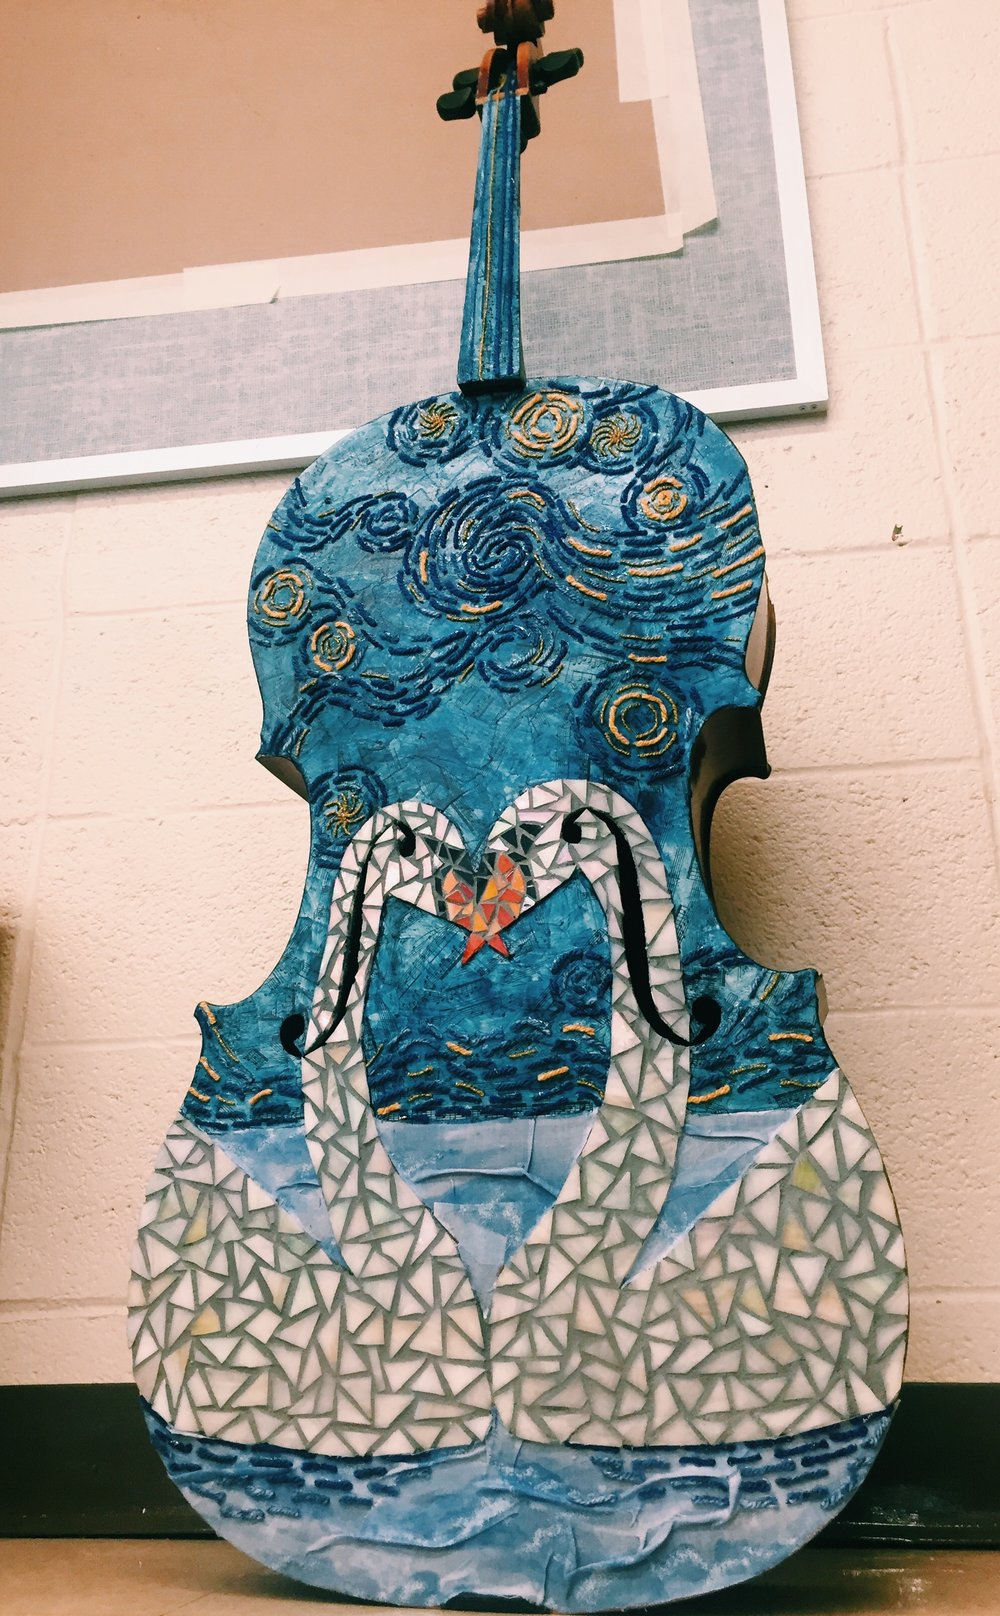 The Starry Night; 2015-2016 glass mosaic, cloth, yarn, music sheets, acrylics on a cello